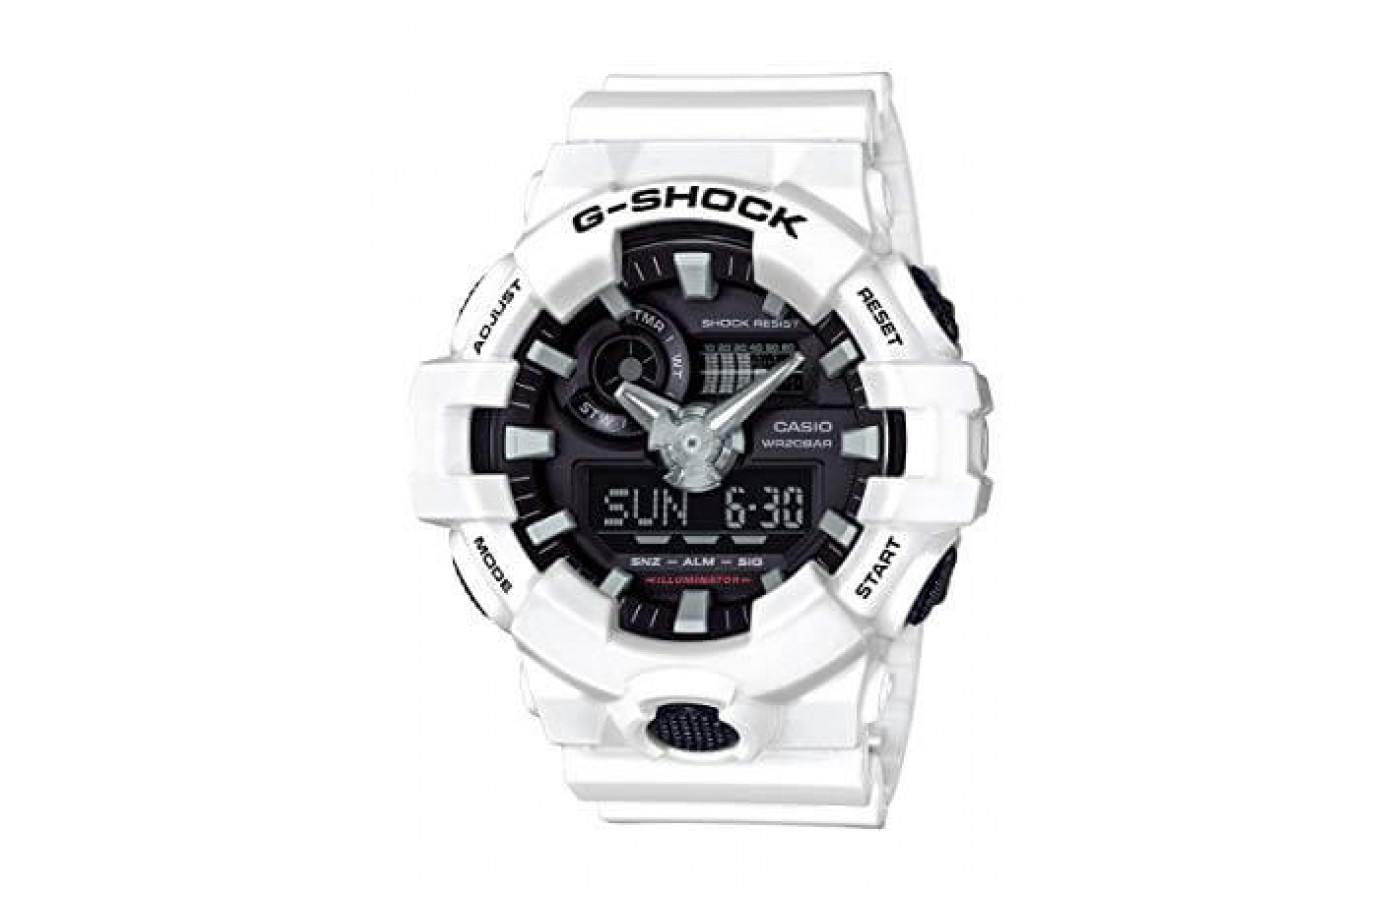 The G-Shock GA700-1B is water resistant in up to 200 meters.